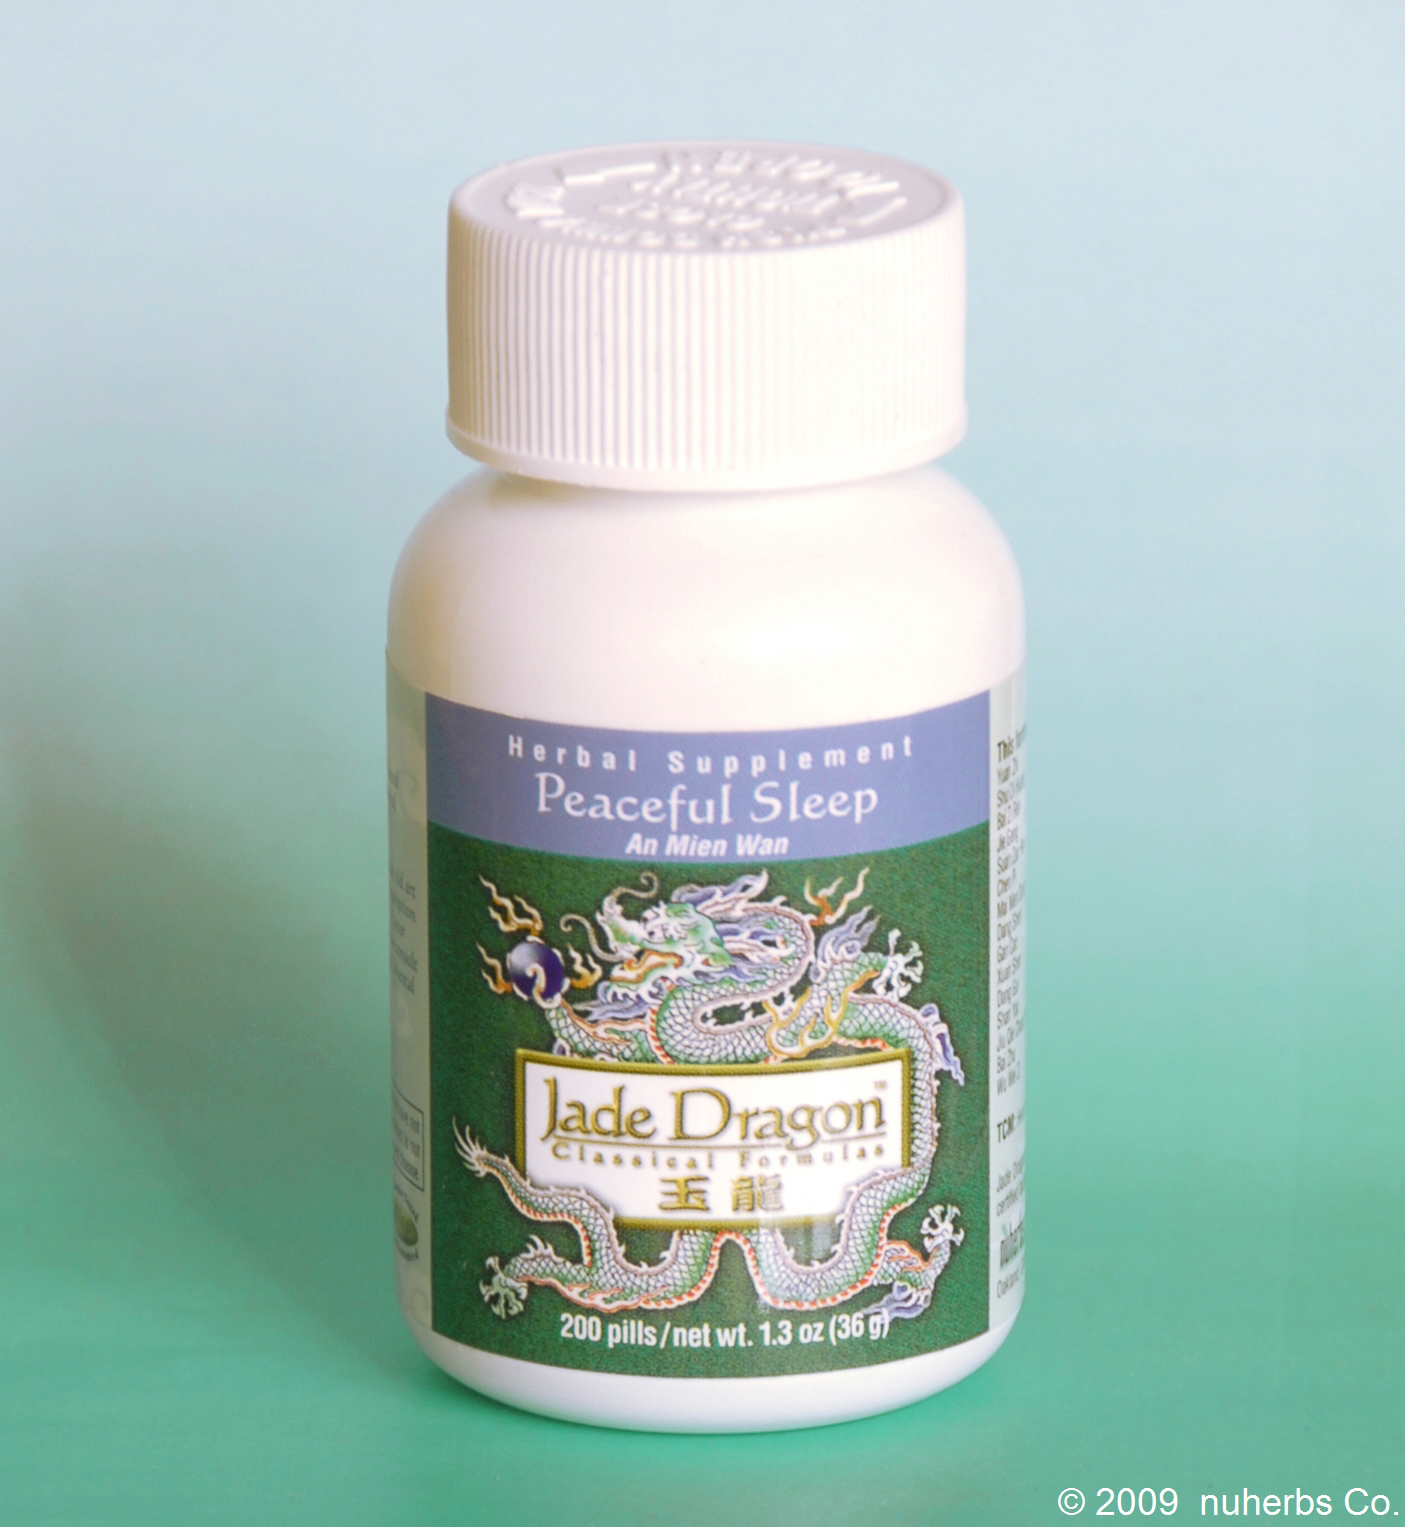 Jade Dragon Peaceful Sleep (An Mien Wan) 200 Pills: TC